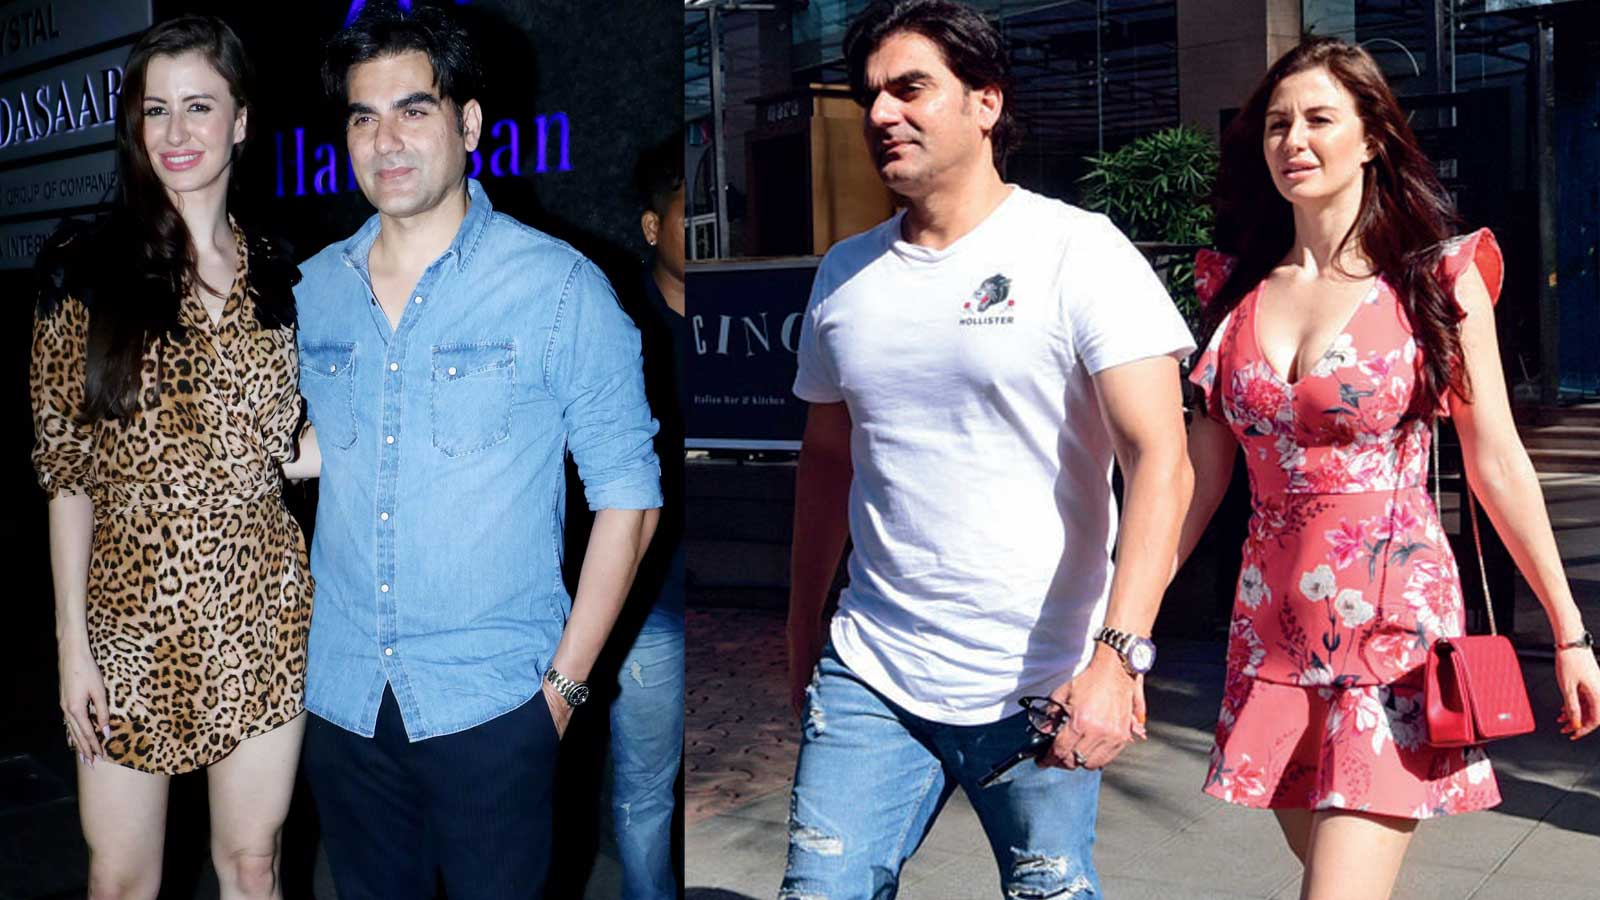 arbaaz-khan-opens-up-about-marrying-lady-love-giorgia-andriani